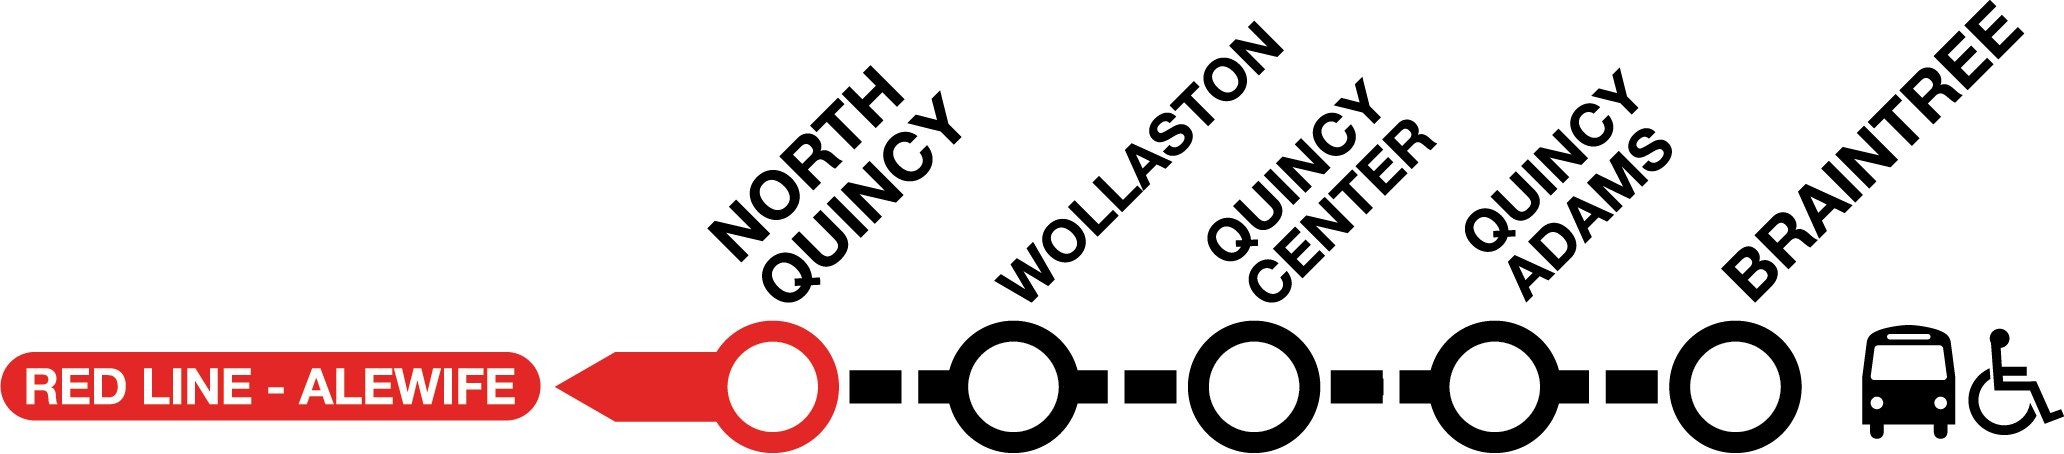 Diversion graphic showing the Red Line stopping at North Quincy station, following by a black dotted line to signify bus shuttles running from North Quincy to Braintree.